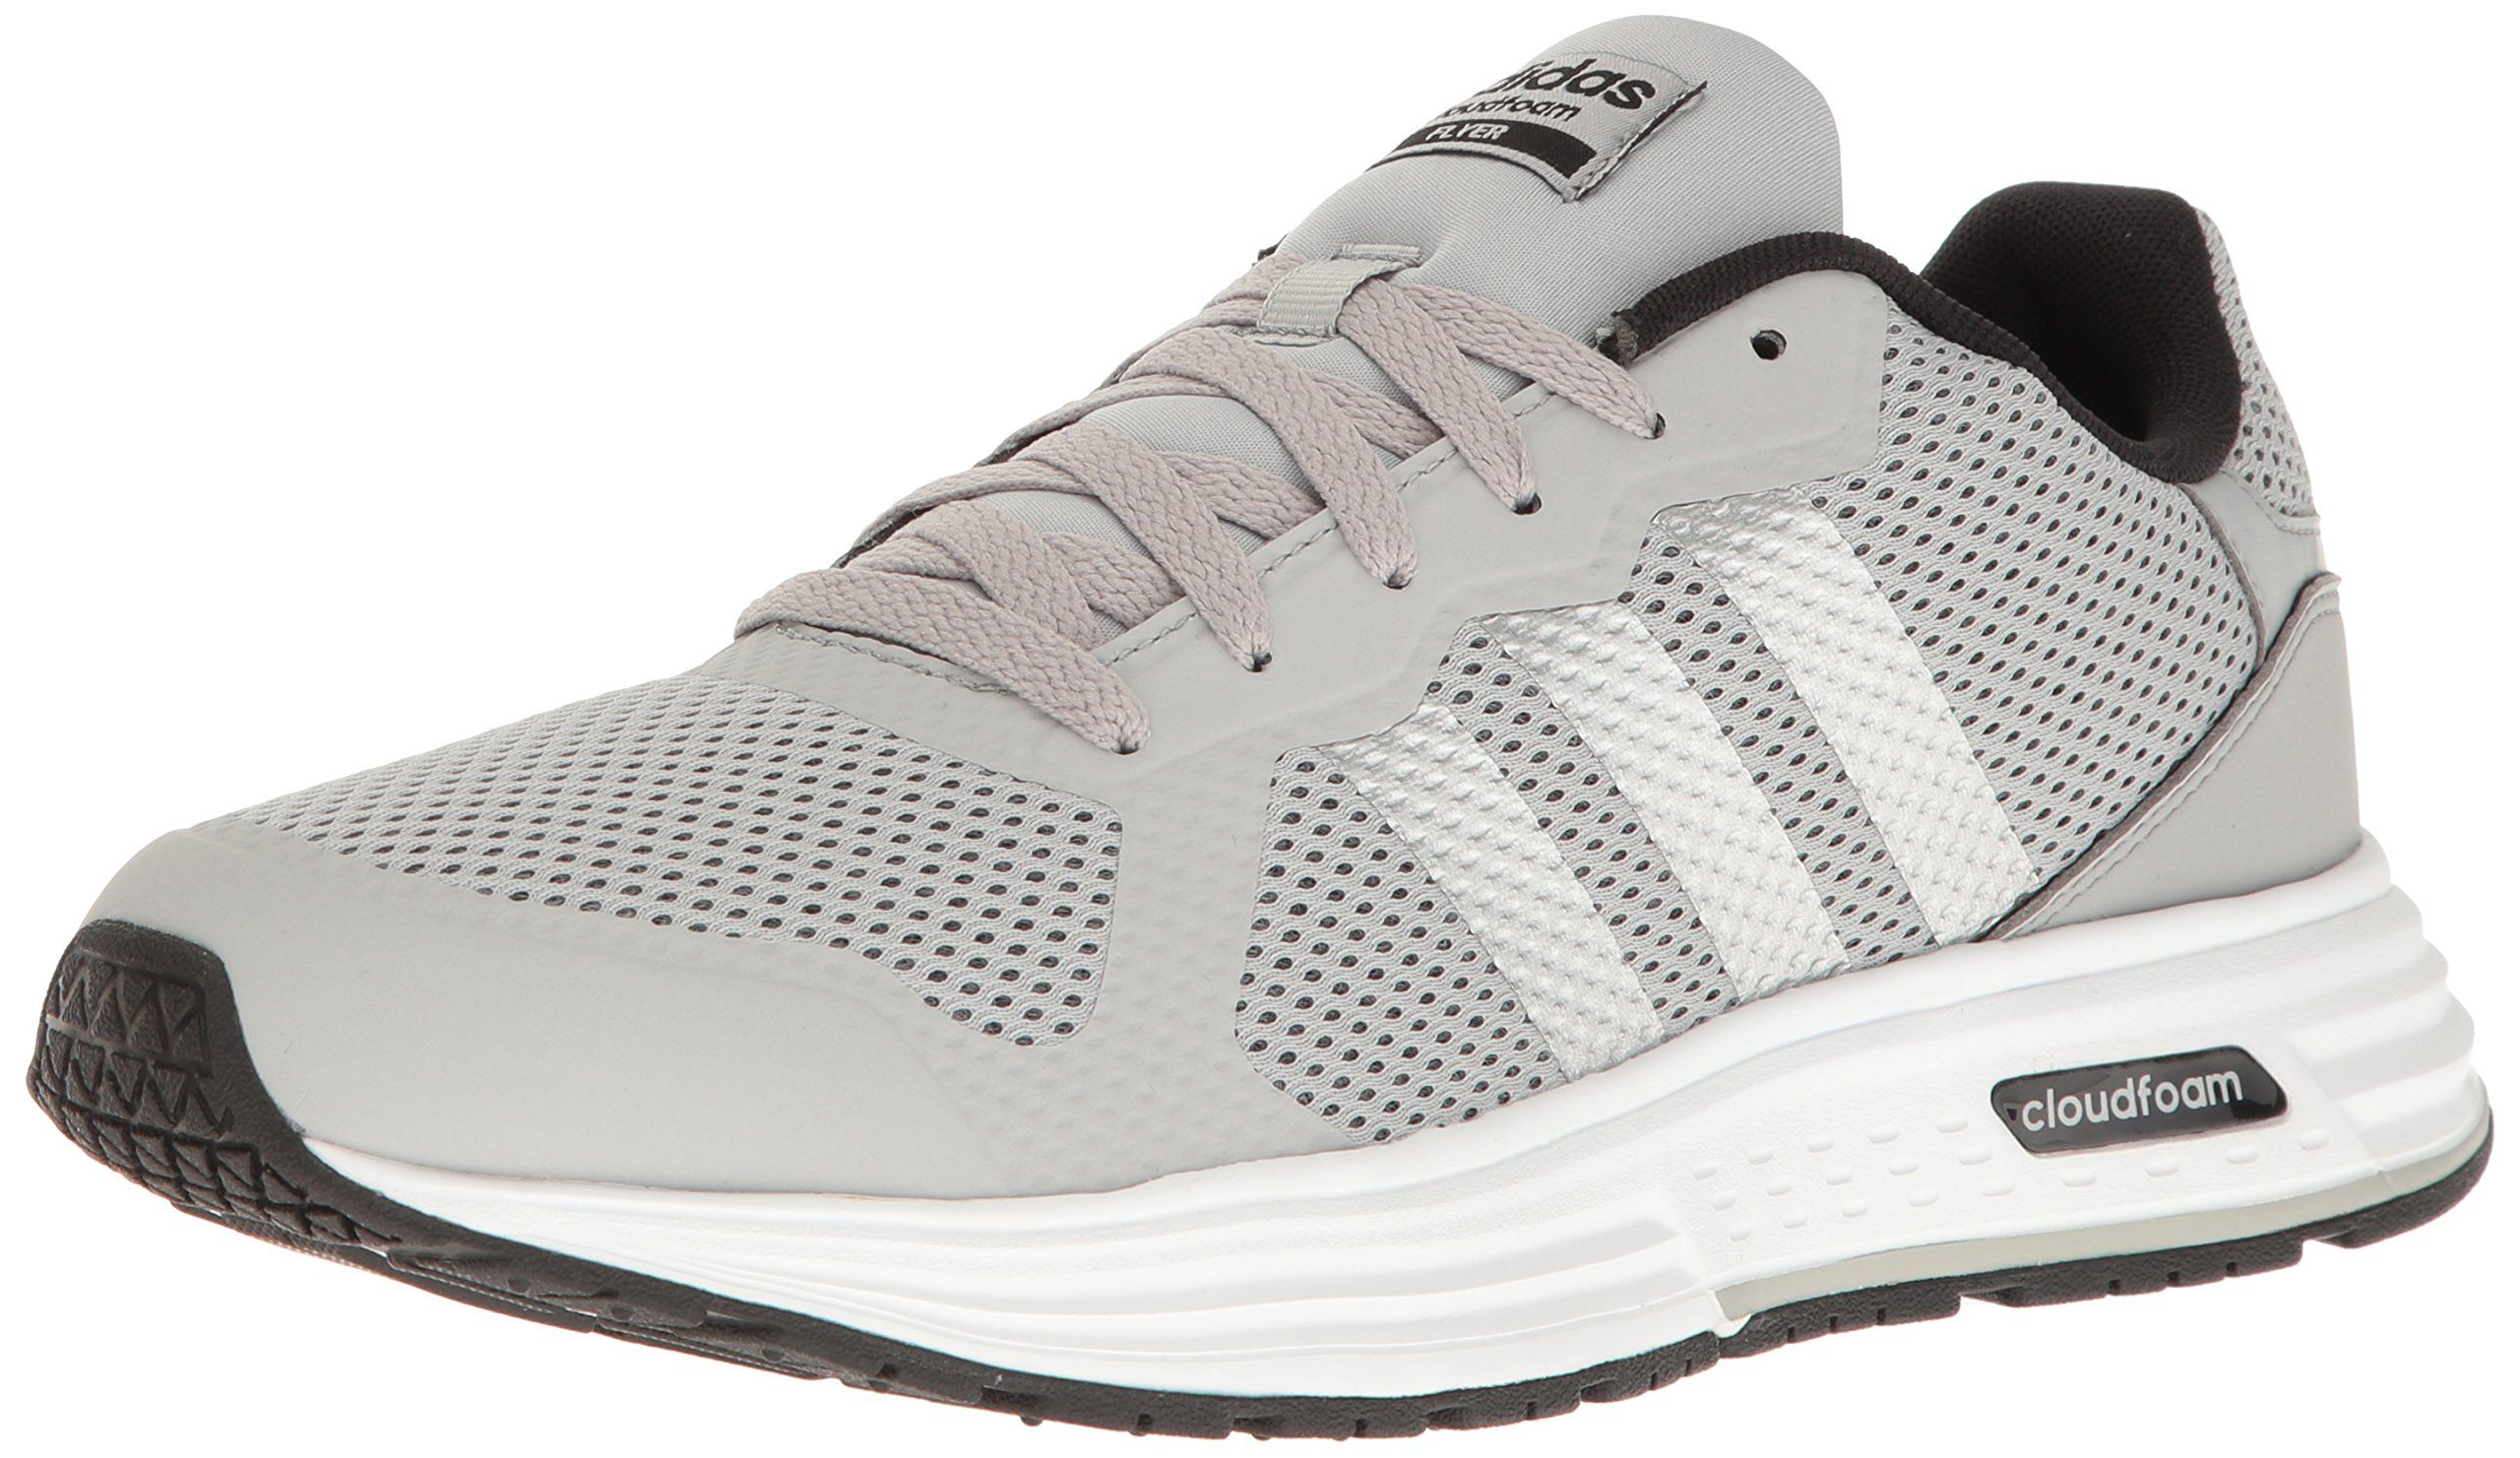 adidas cloudfoam flyer mens trainers